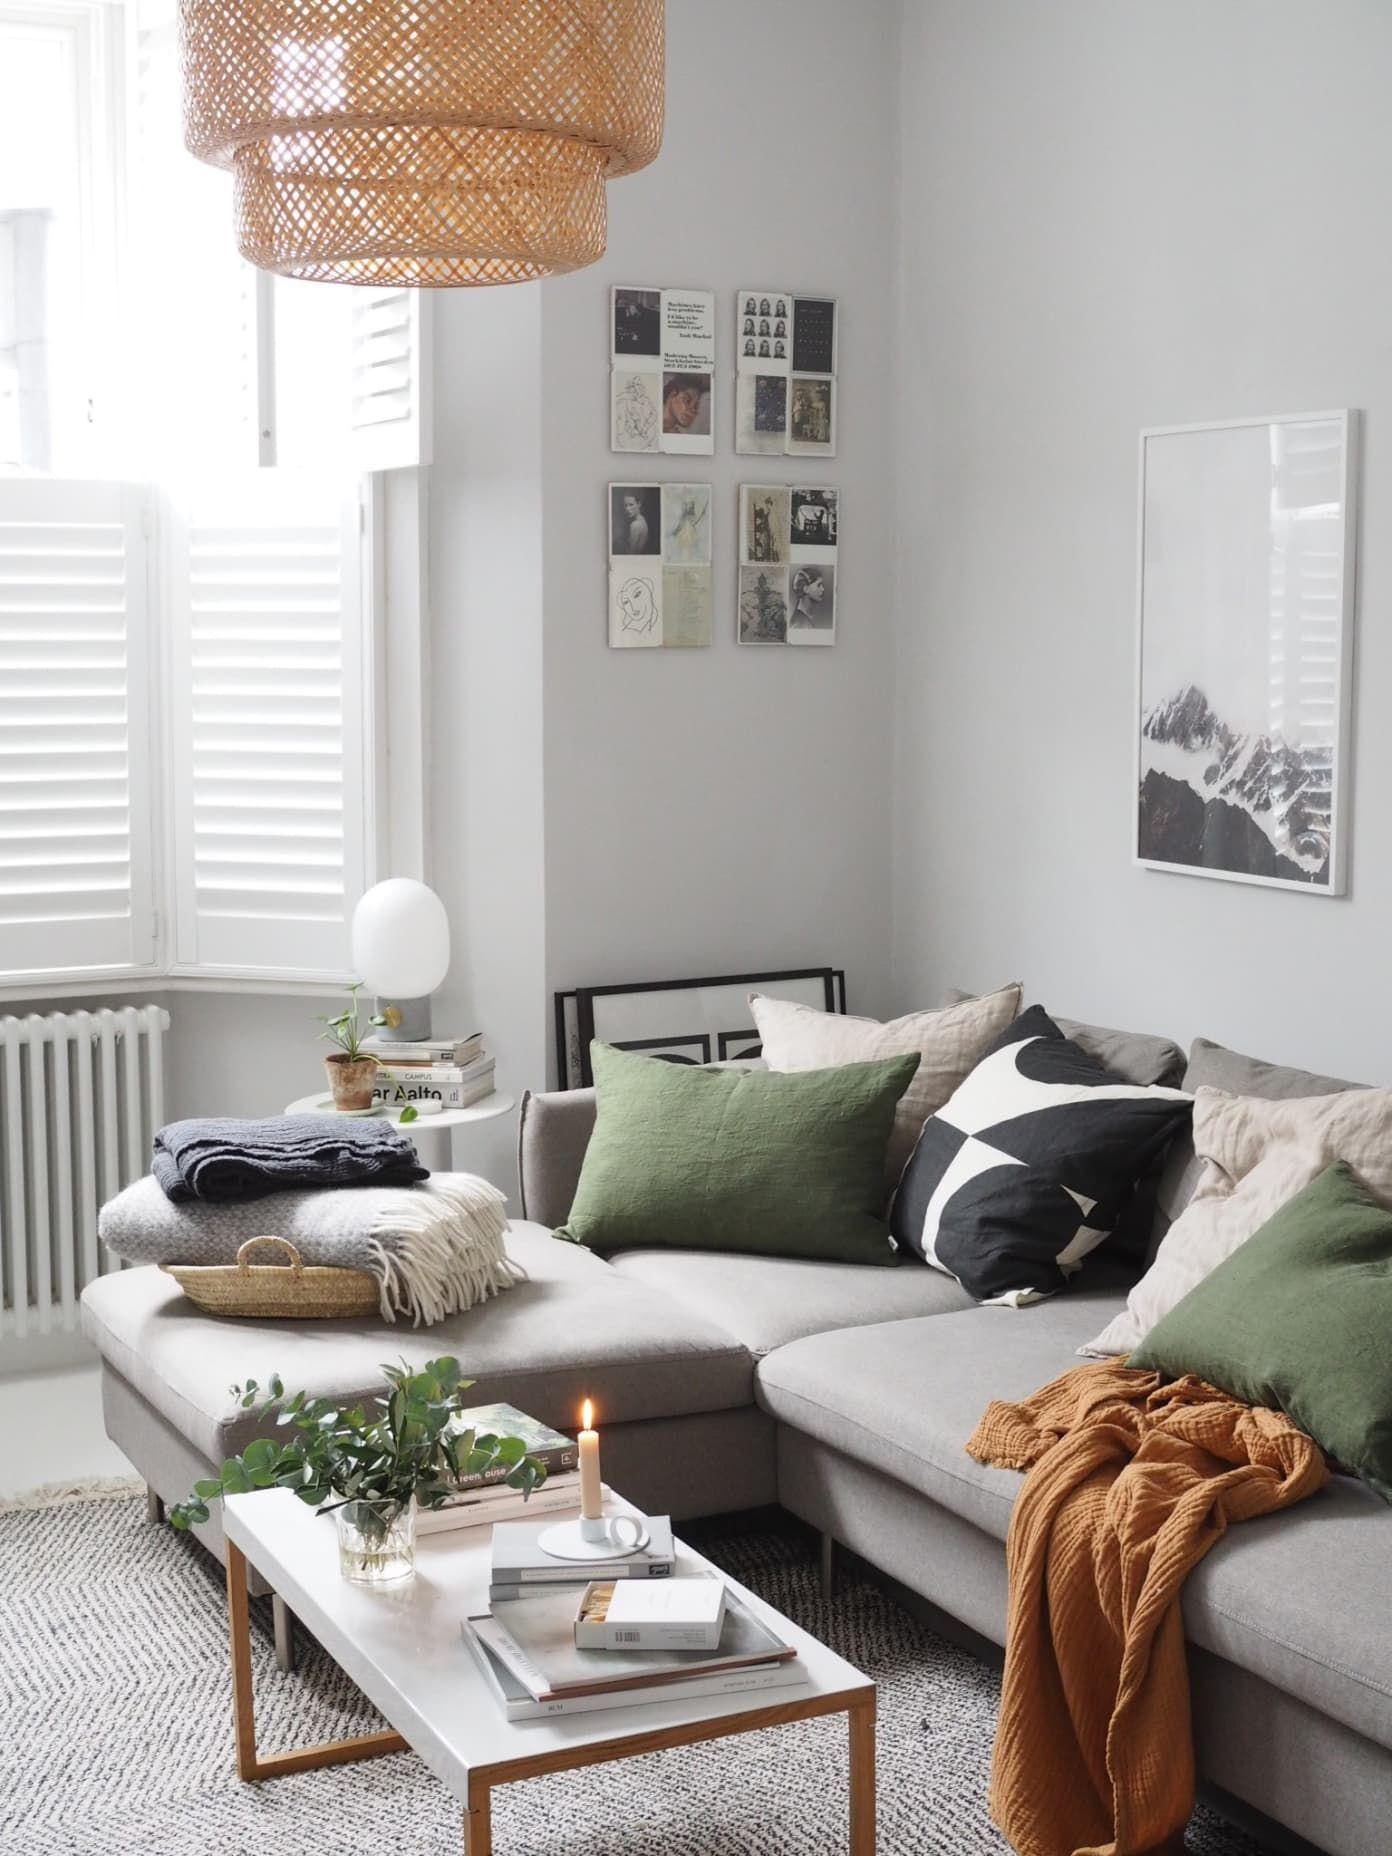 A Scandinavian Inspired London Home Is An Elegantly Simple And Inspiring Space In 2020 Minimalist Living Room Living Room Scandinavian Hygge Living Room